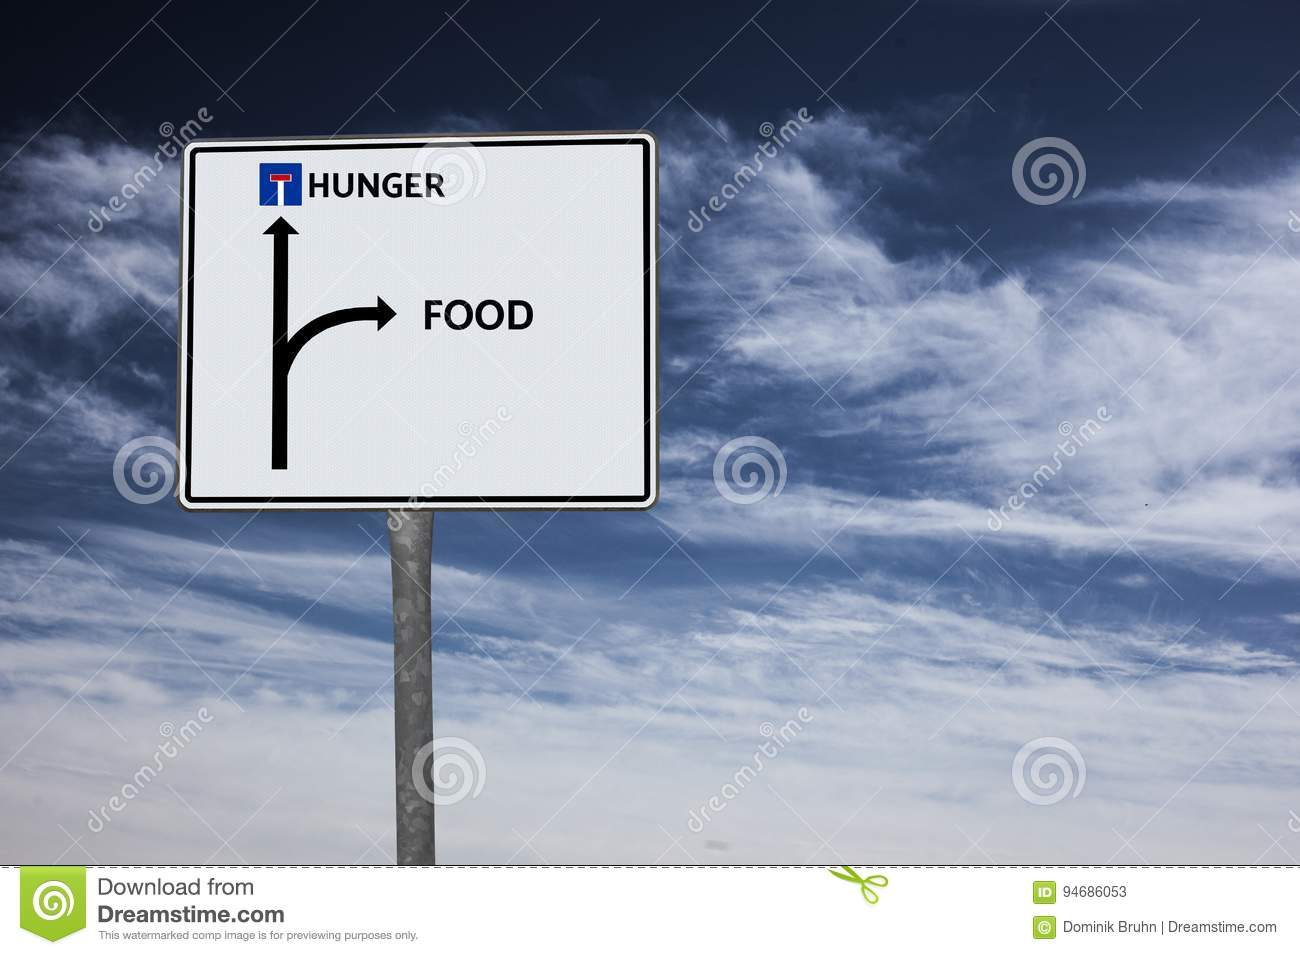 Hunger Food Image With Words Associated With The Topic Famine